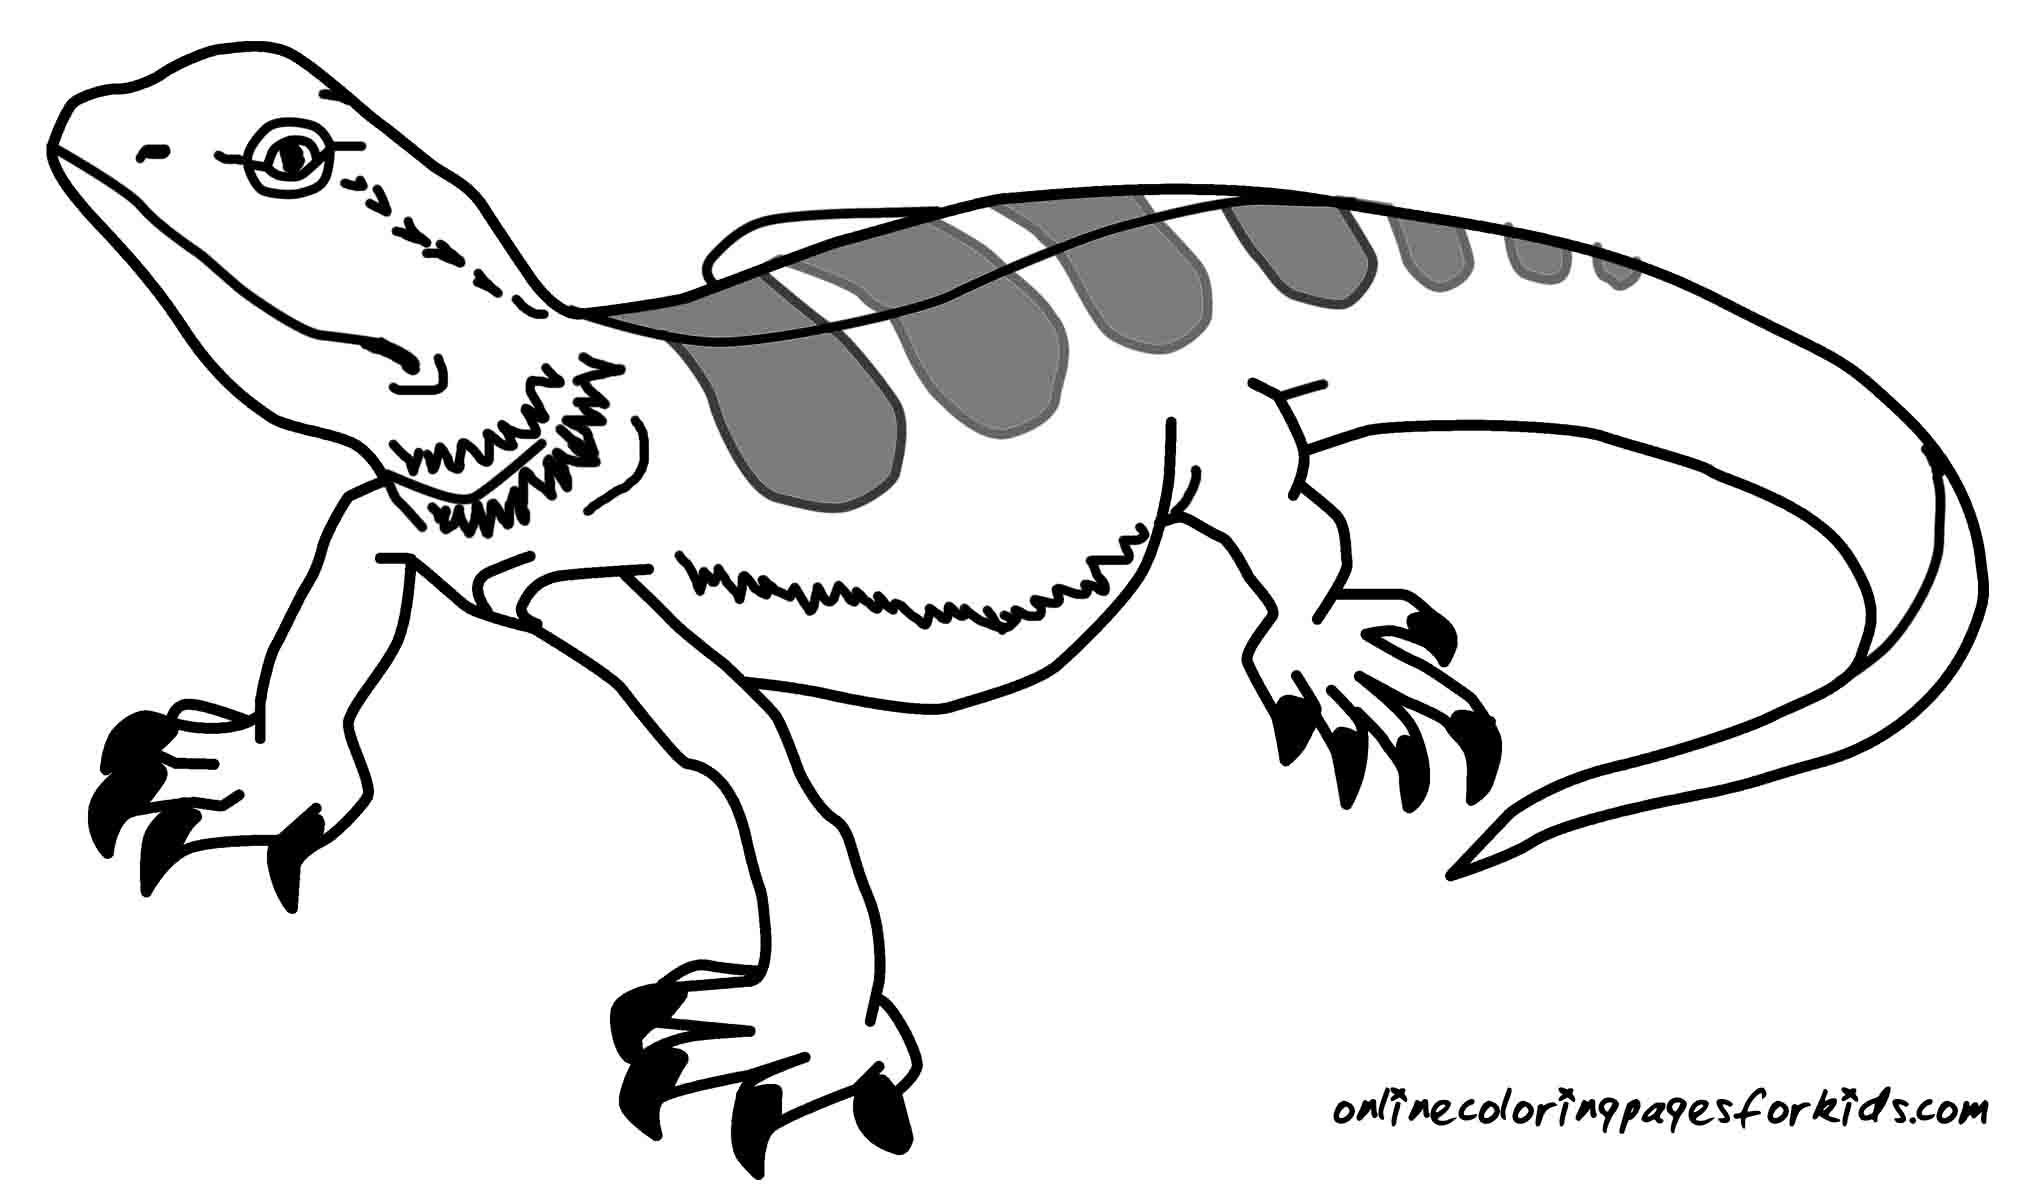 lizard coloring page free lizard coloring pages lizard page coloring